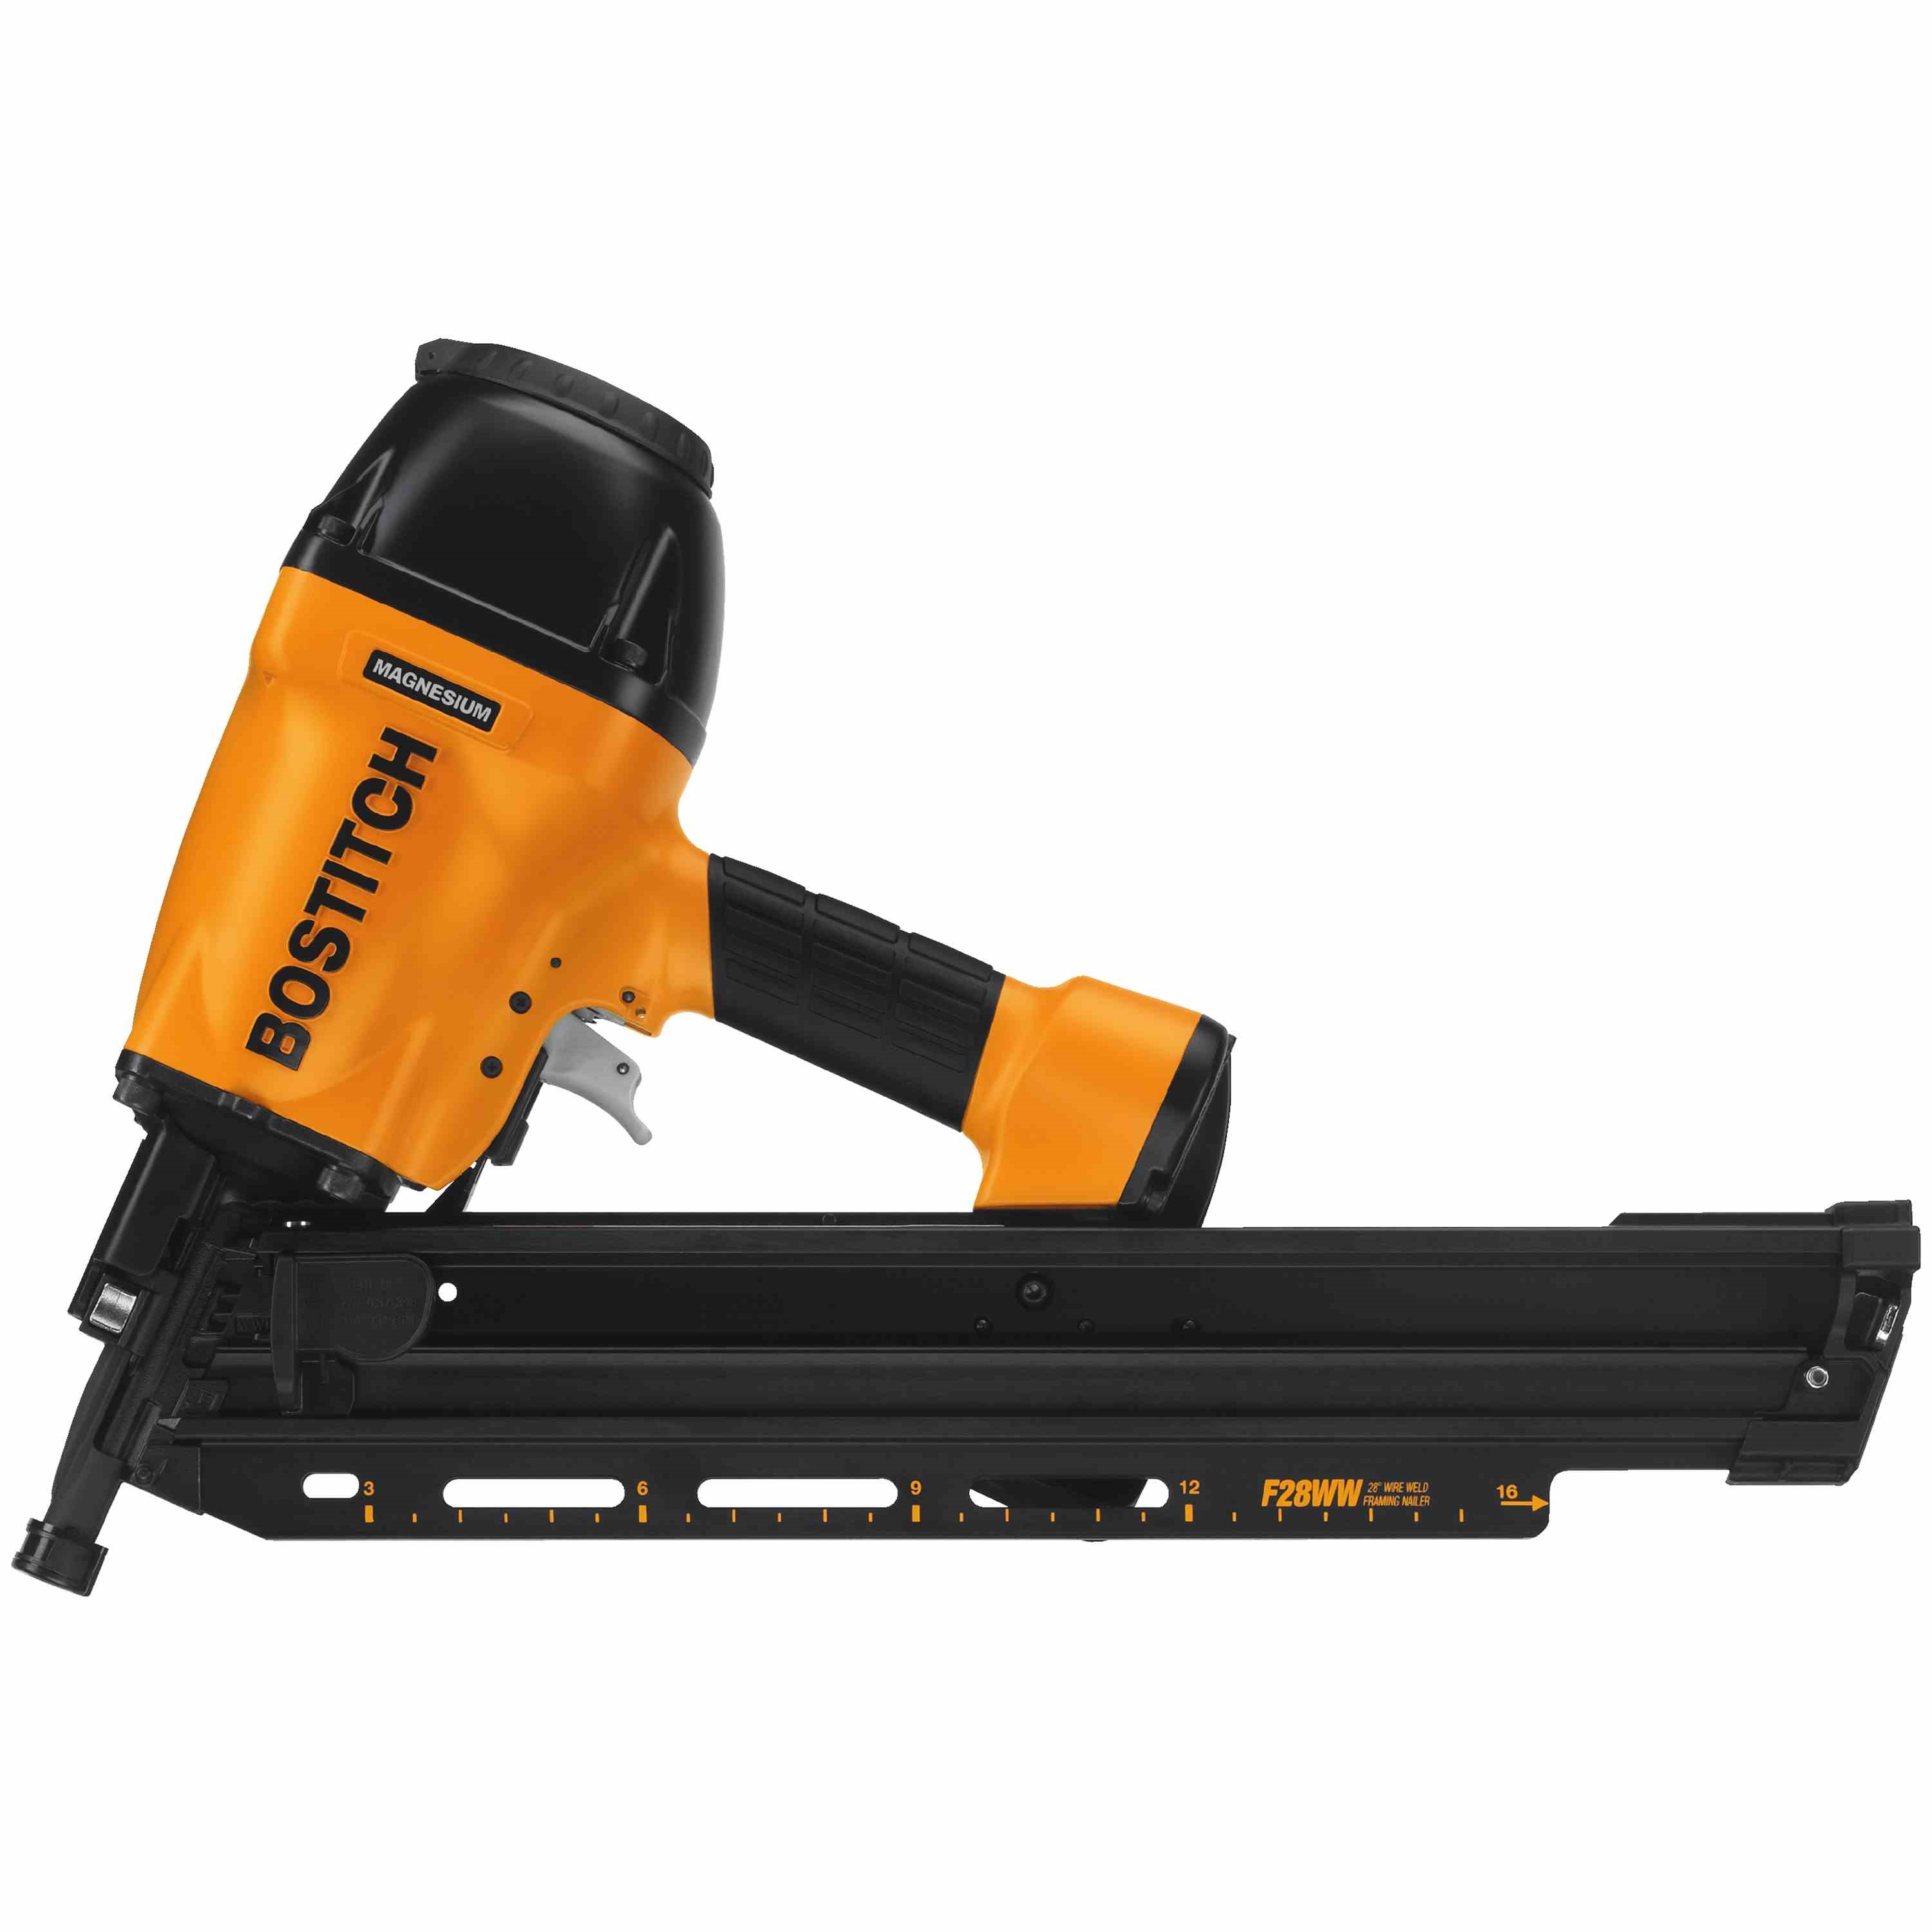 Bostitch - 28 degree Industrial Framing Nailer System - F28WW